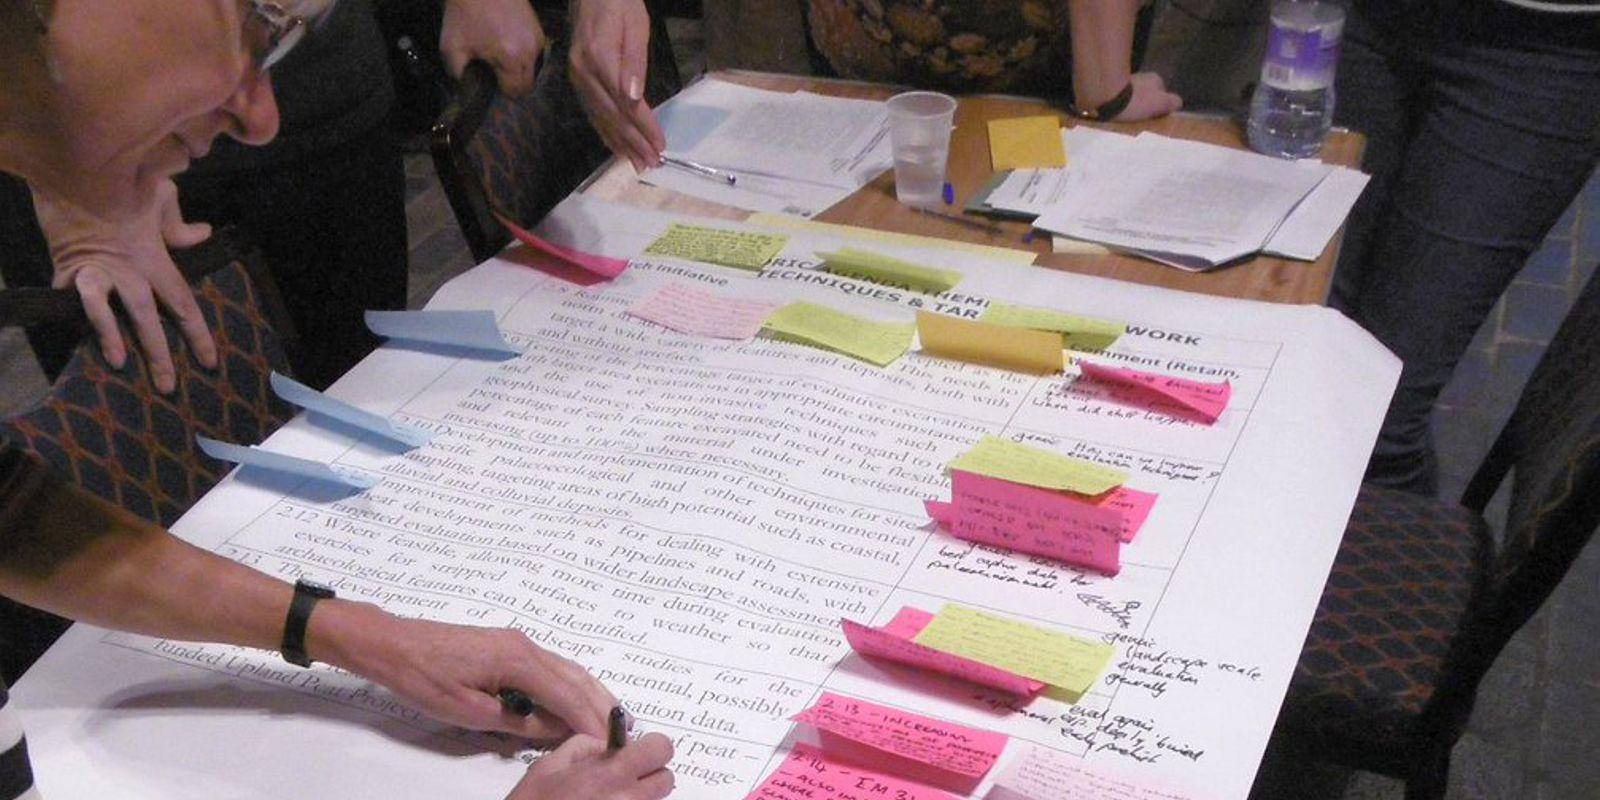 Adding notes to the existing research framework